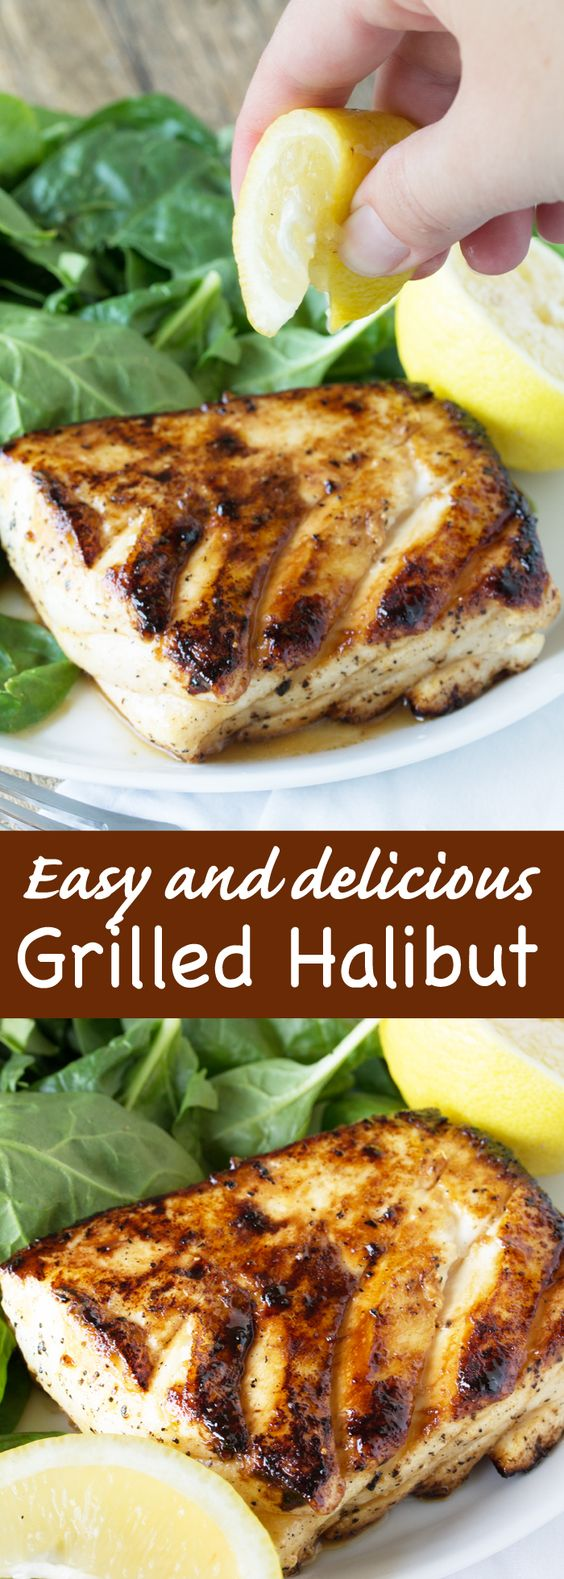 Grilled halibut, Delicious meals and Halibut on Pinterest